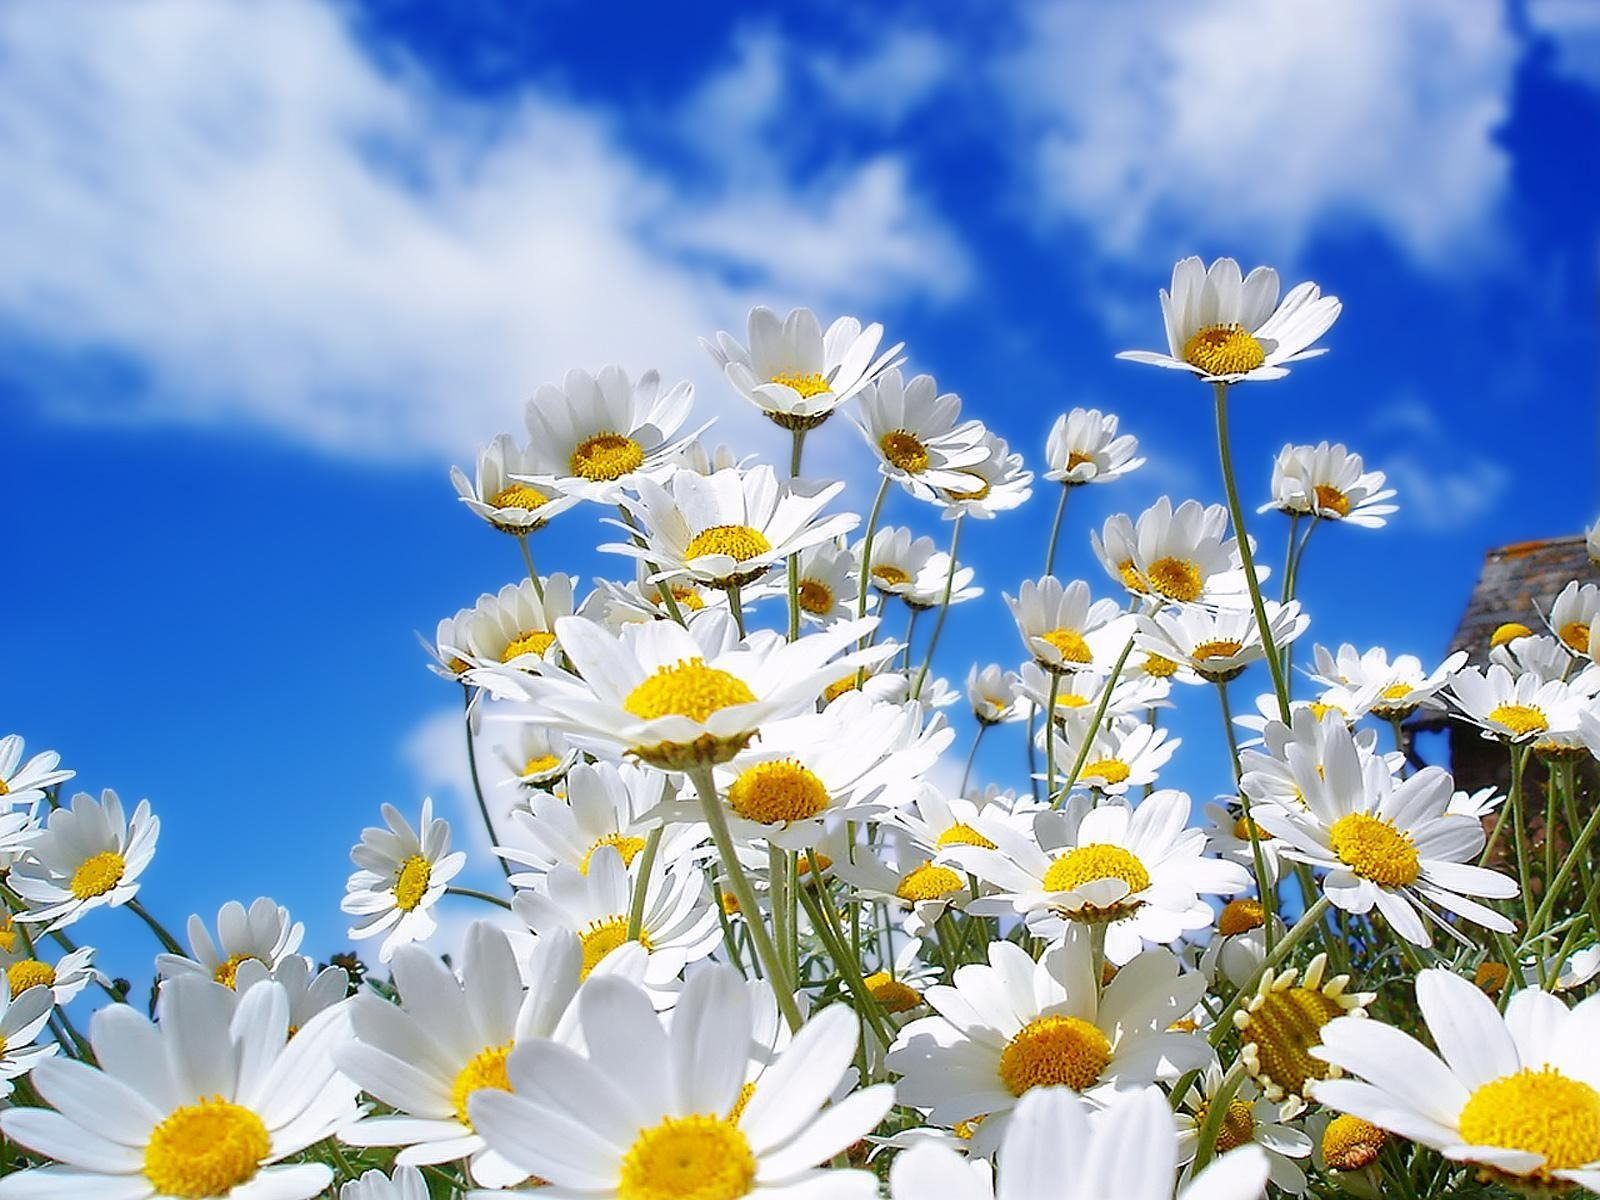 Beautiful Summer Flowers   HD Wallpapers Widescreen   1600x1200 1600x1200